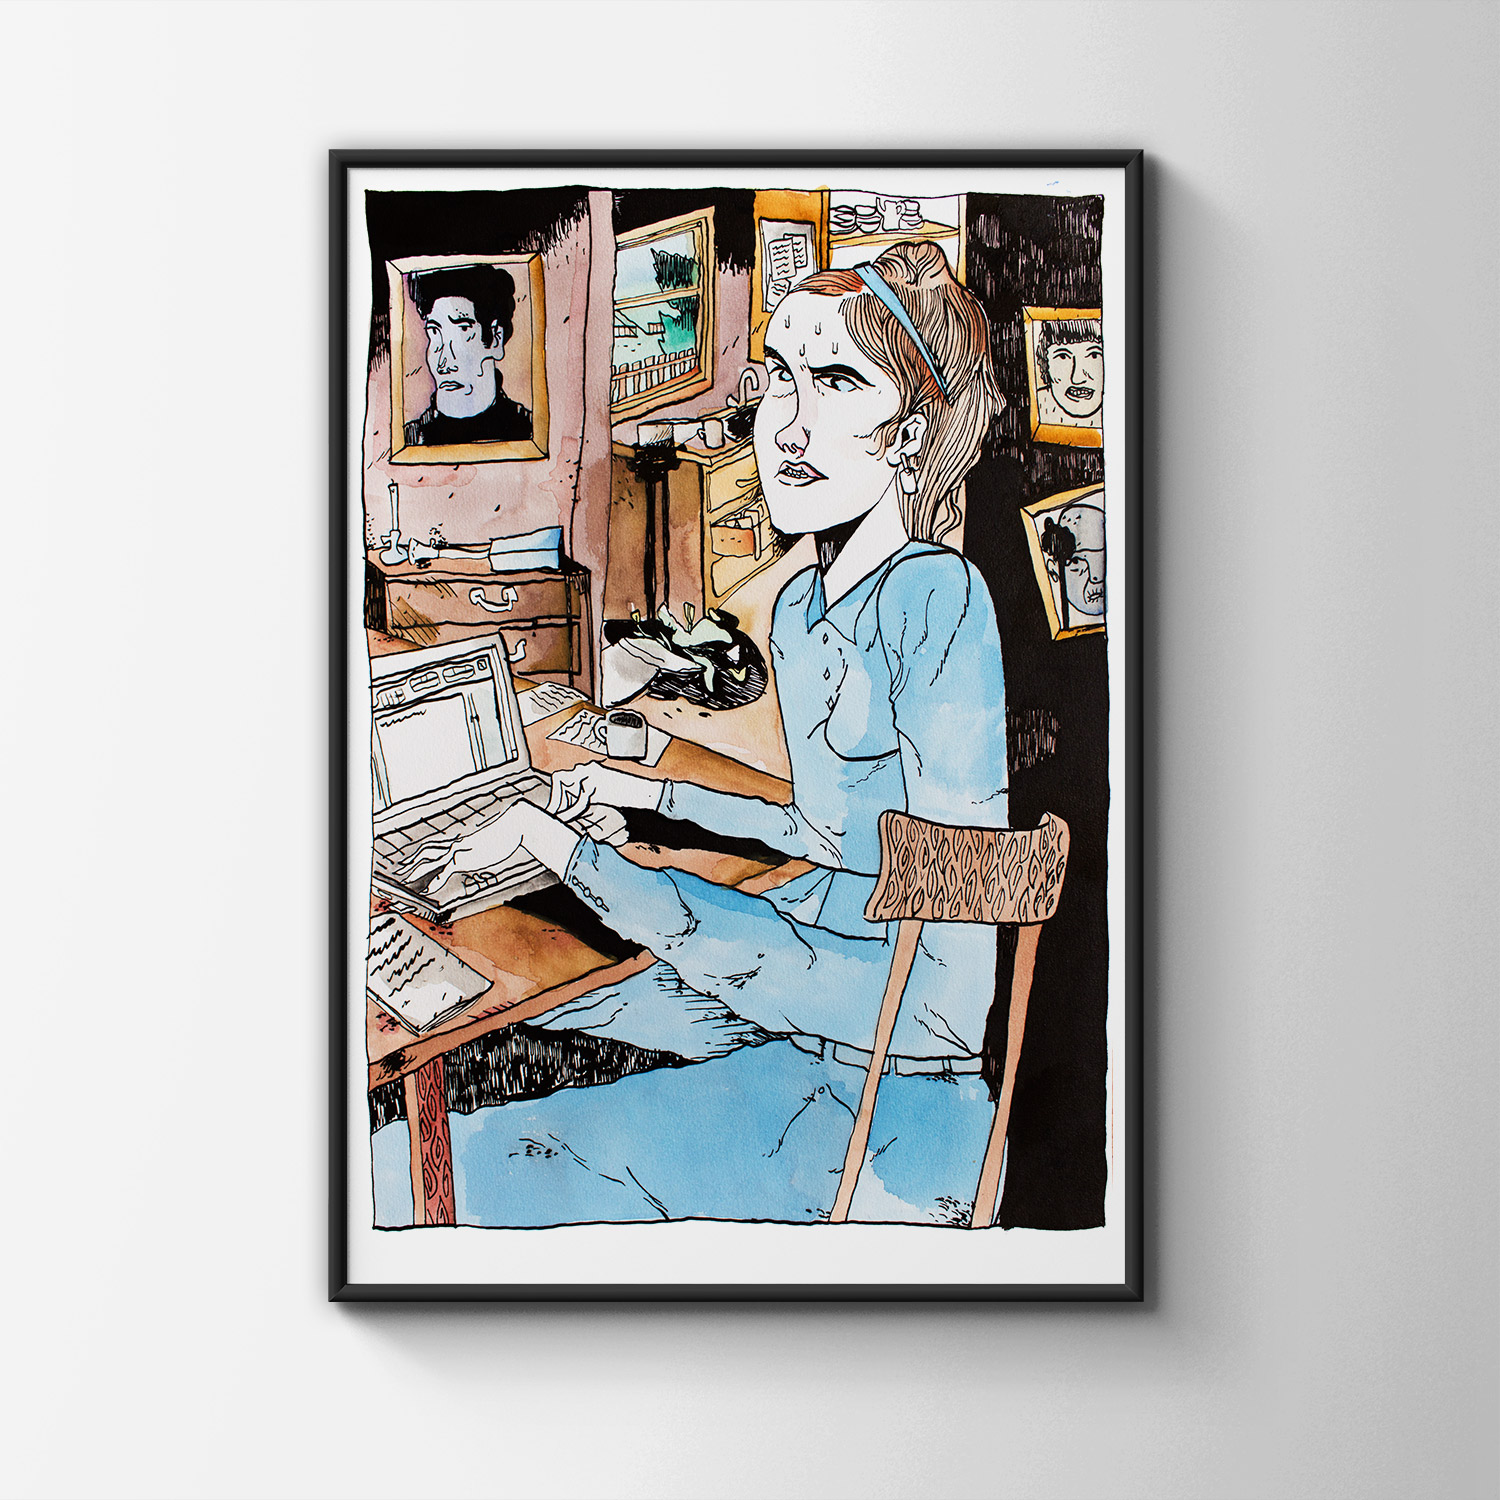 drawings, graphical, illustrative, portraiture, everyday life, people, sexuality, black, grey, white, artliner, paper, marker, nude, Buy original high quality art. Paintings, drawings, limited edition prints & posters by talented artists.